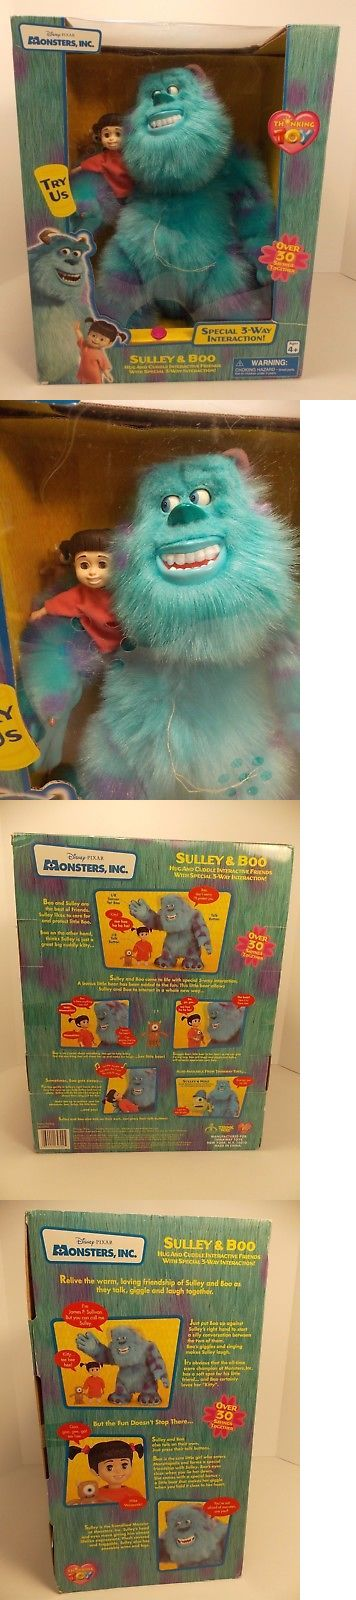 Monsters Inc 44038: New Sealed Monsters Inc Sulley And Boo Electronic Talking Interactive Toys Pixar -> BUY IT NOW ONLY: $99.99 on eBay!